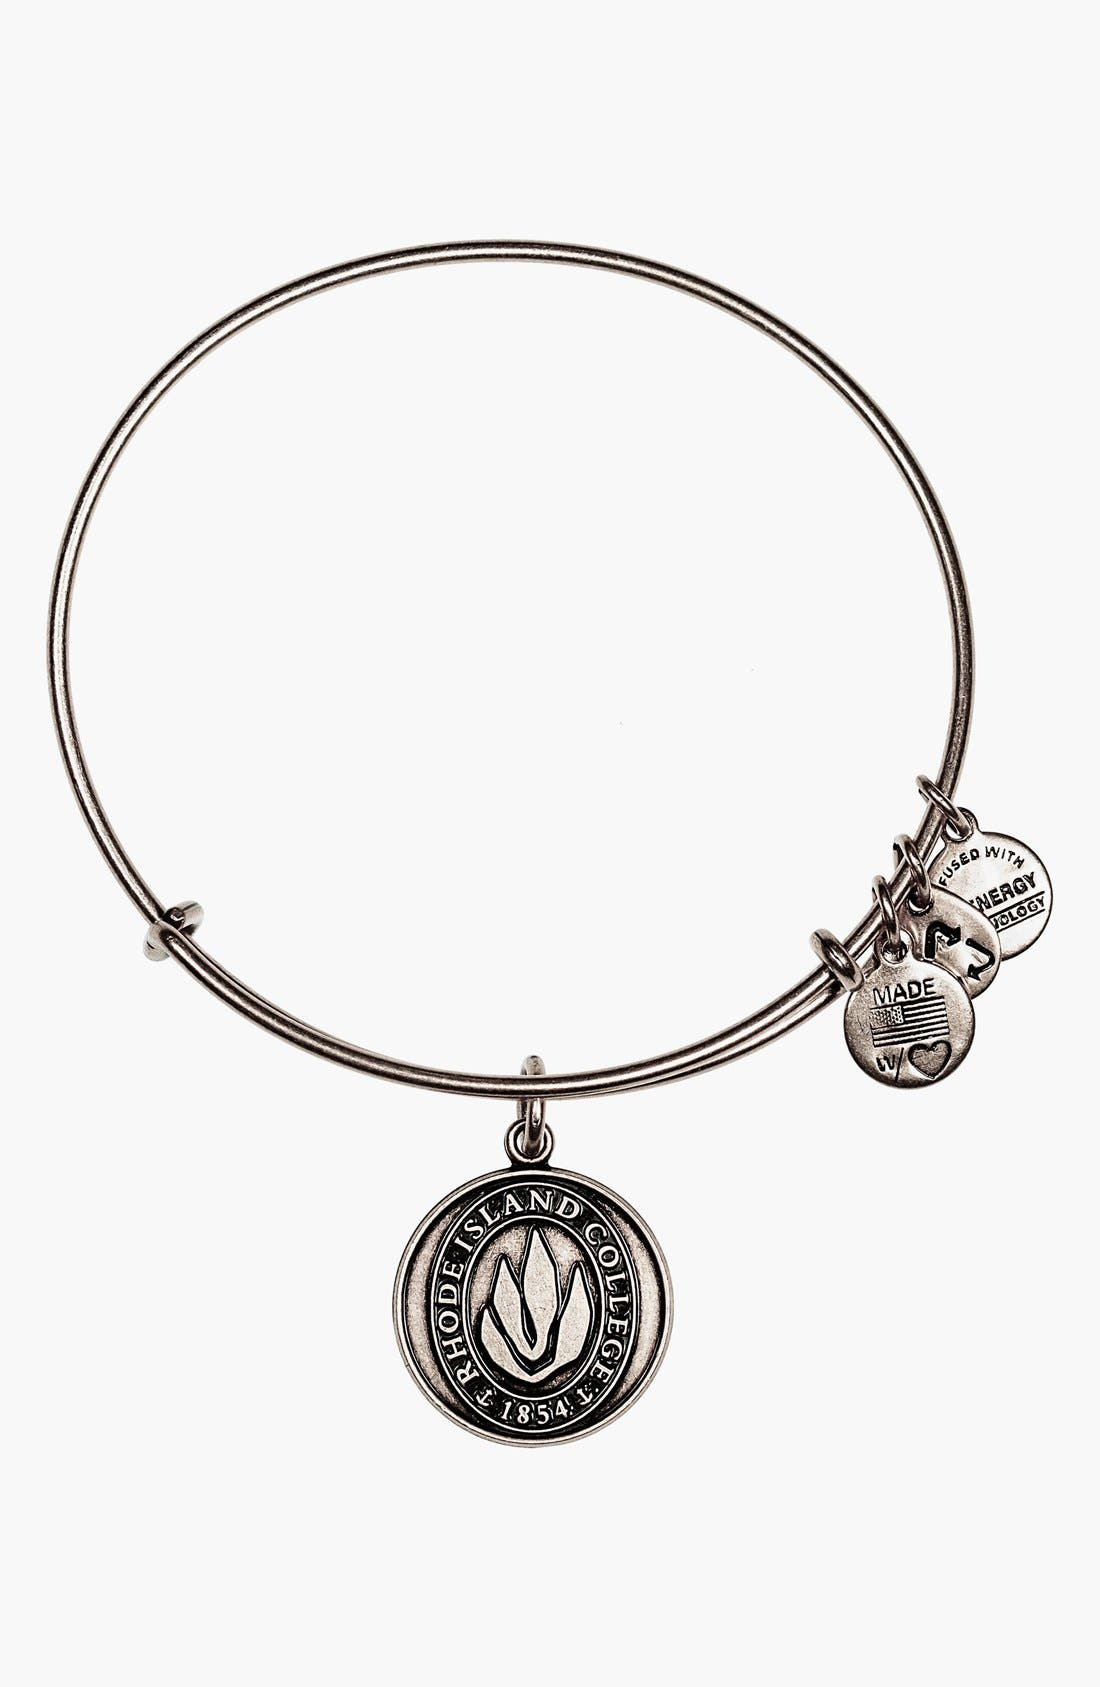 'Collegiate - Rhode Island College' Expandable Charm Bangle,                             Main thumbnail 1, color,                             RUSSIAN SILVER